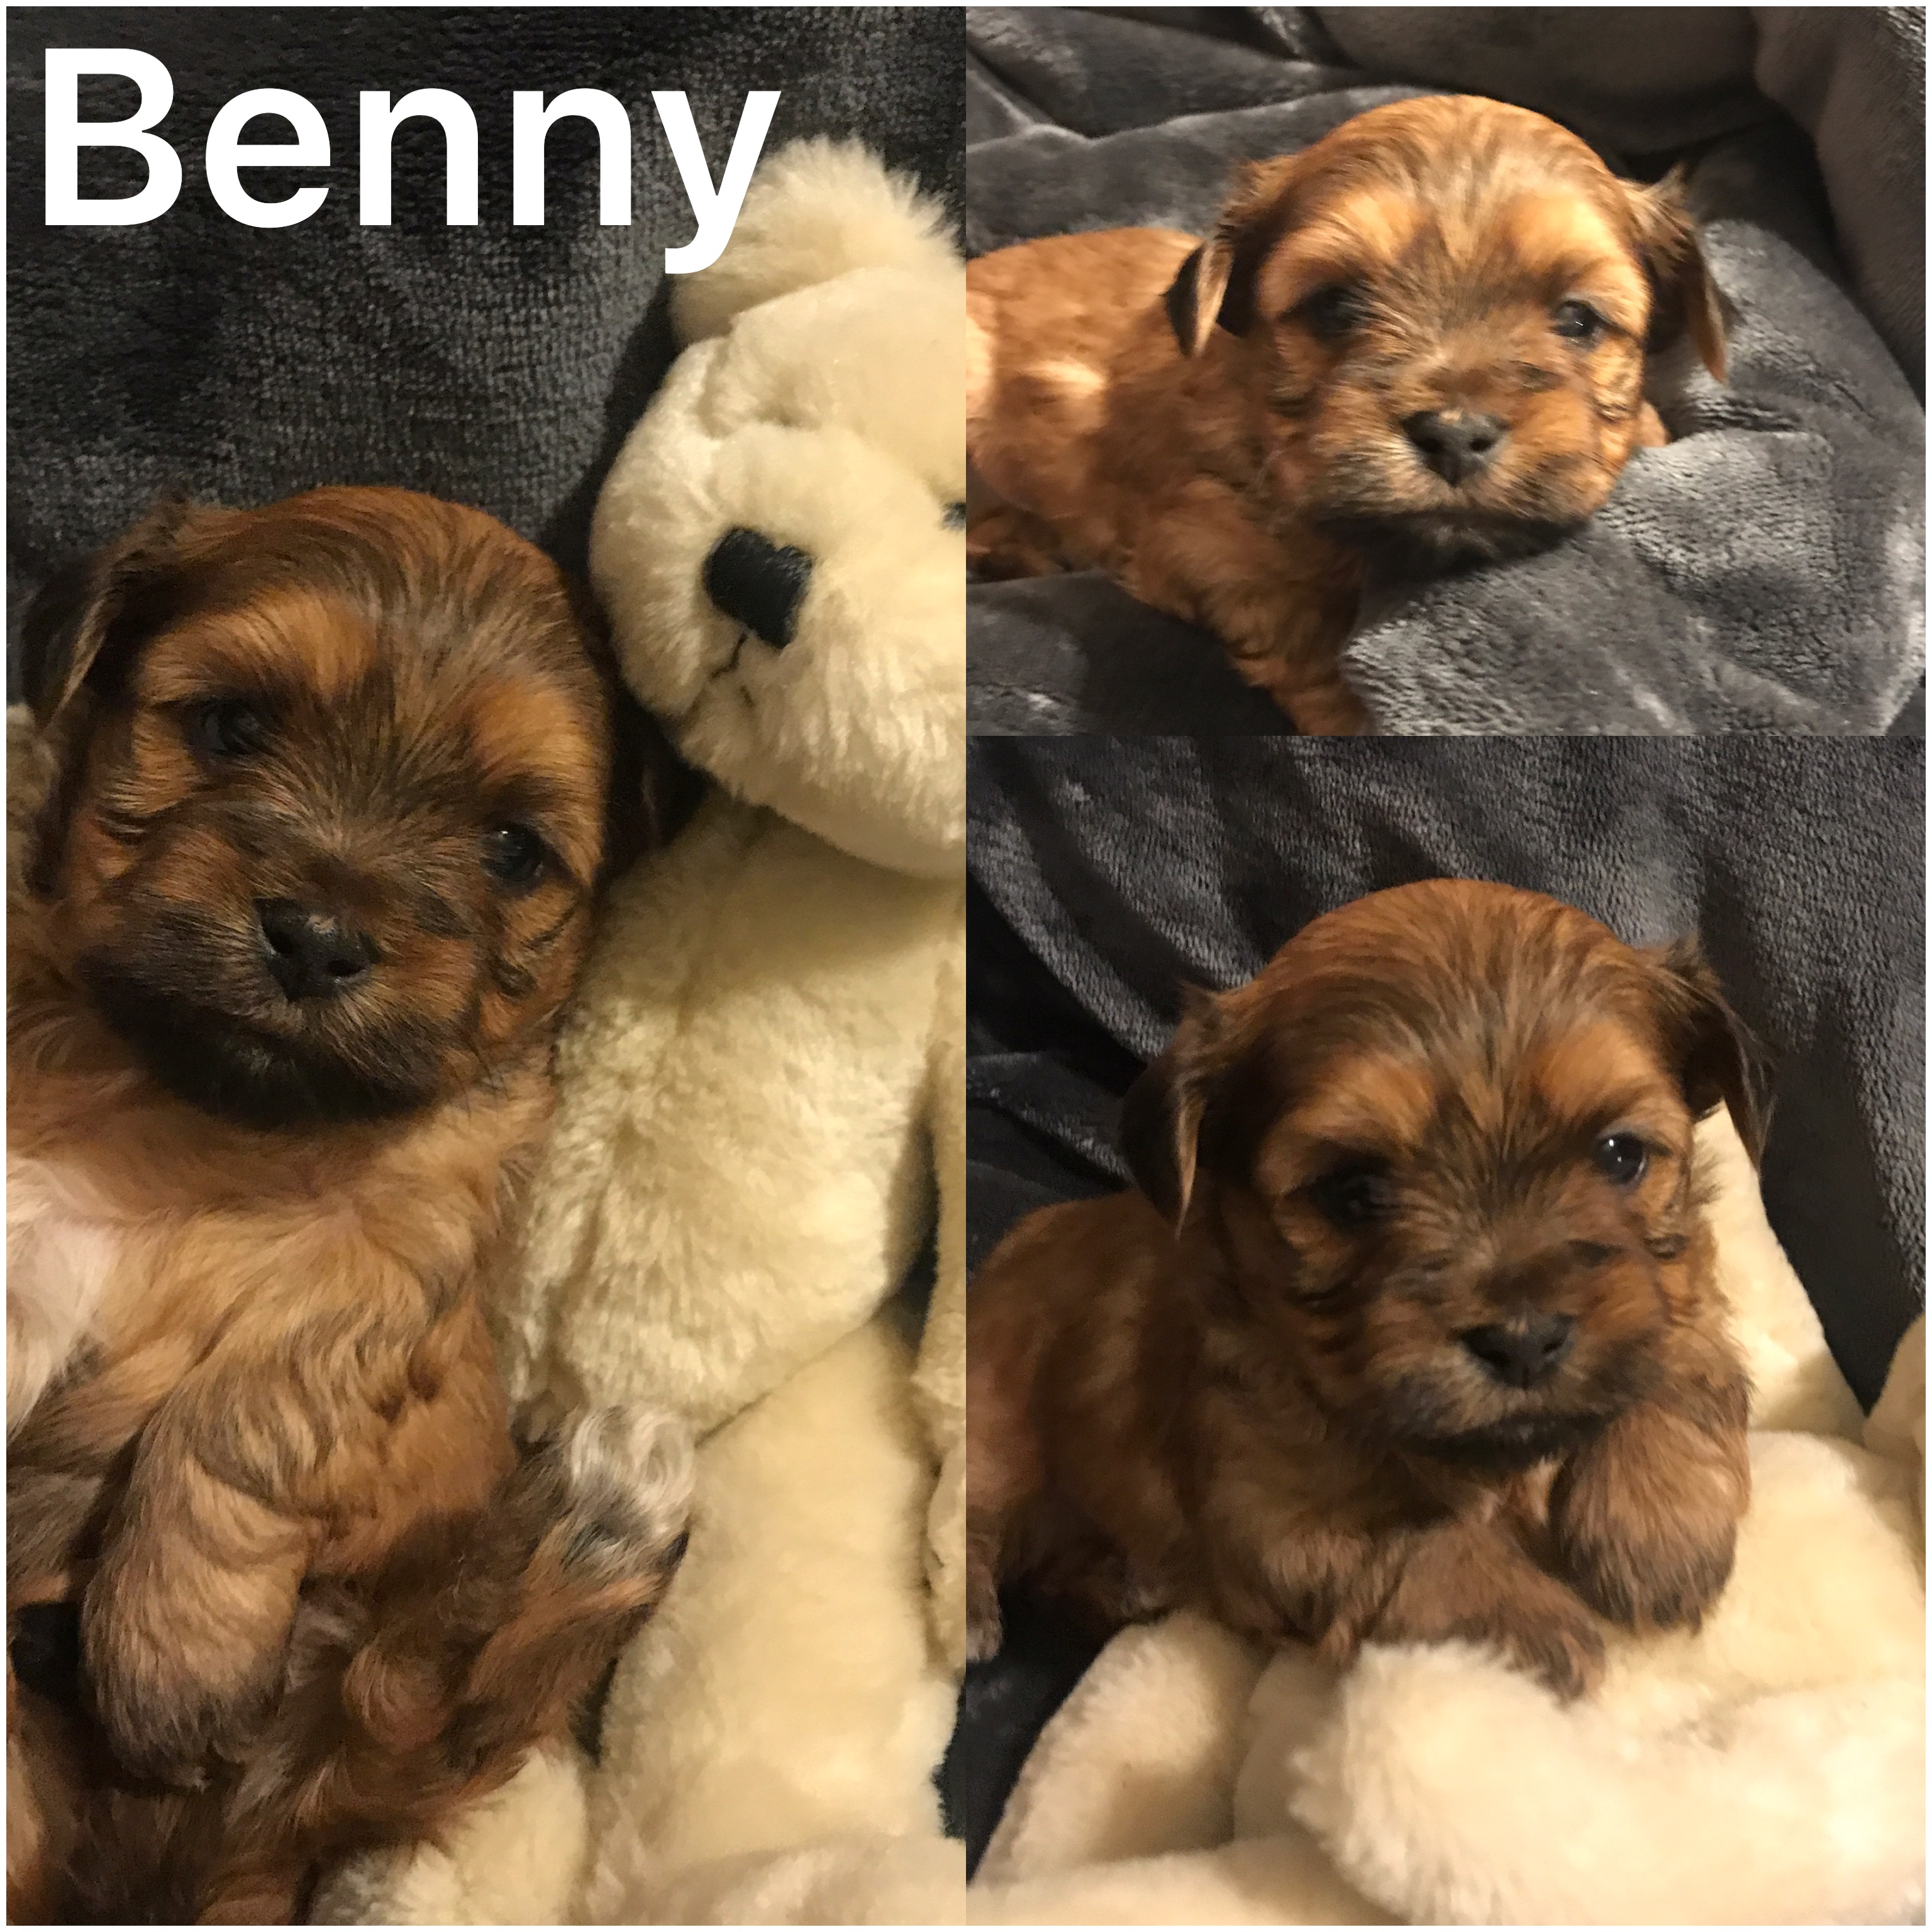 Benny is ADOPTED SANDY AND FAMILY